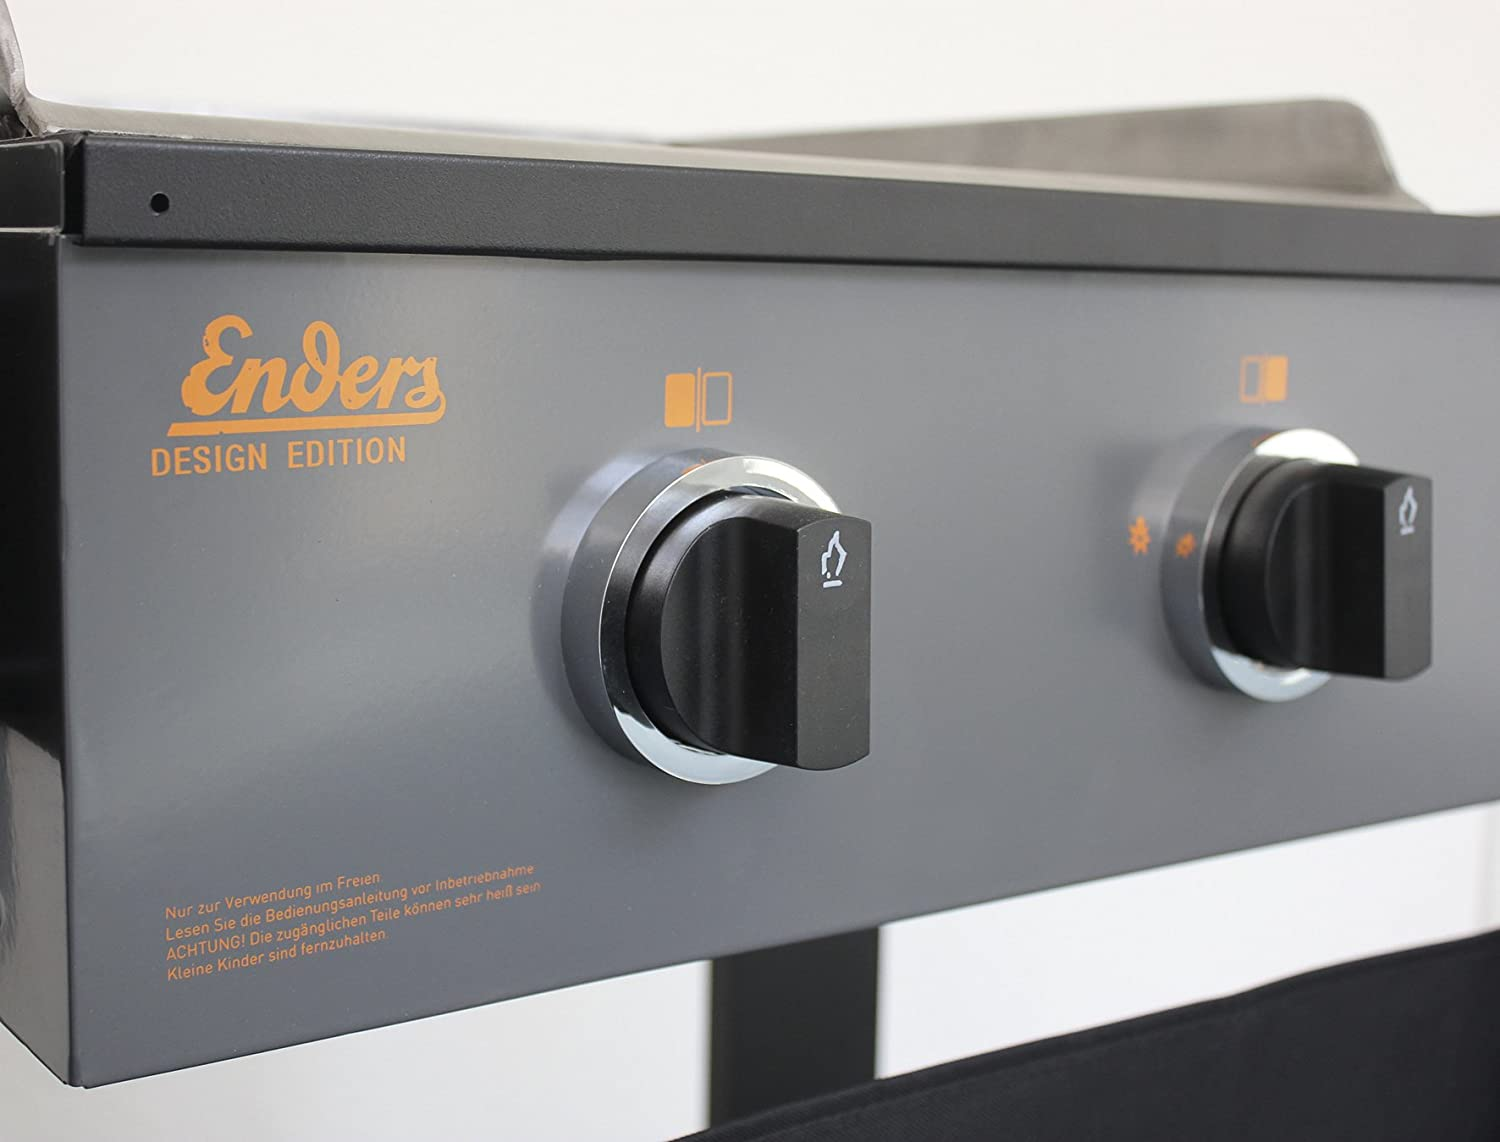 Enders Gasgrill Hannover : Holzkohlegrills elektrogrill enders lavastein gasgrill florida